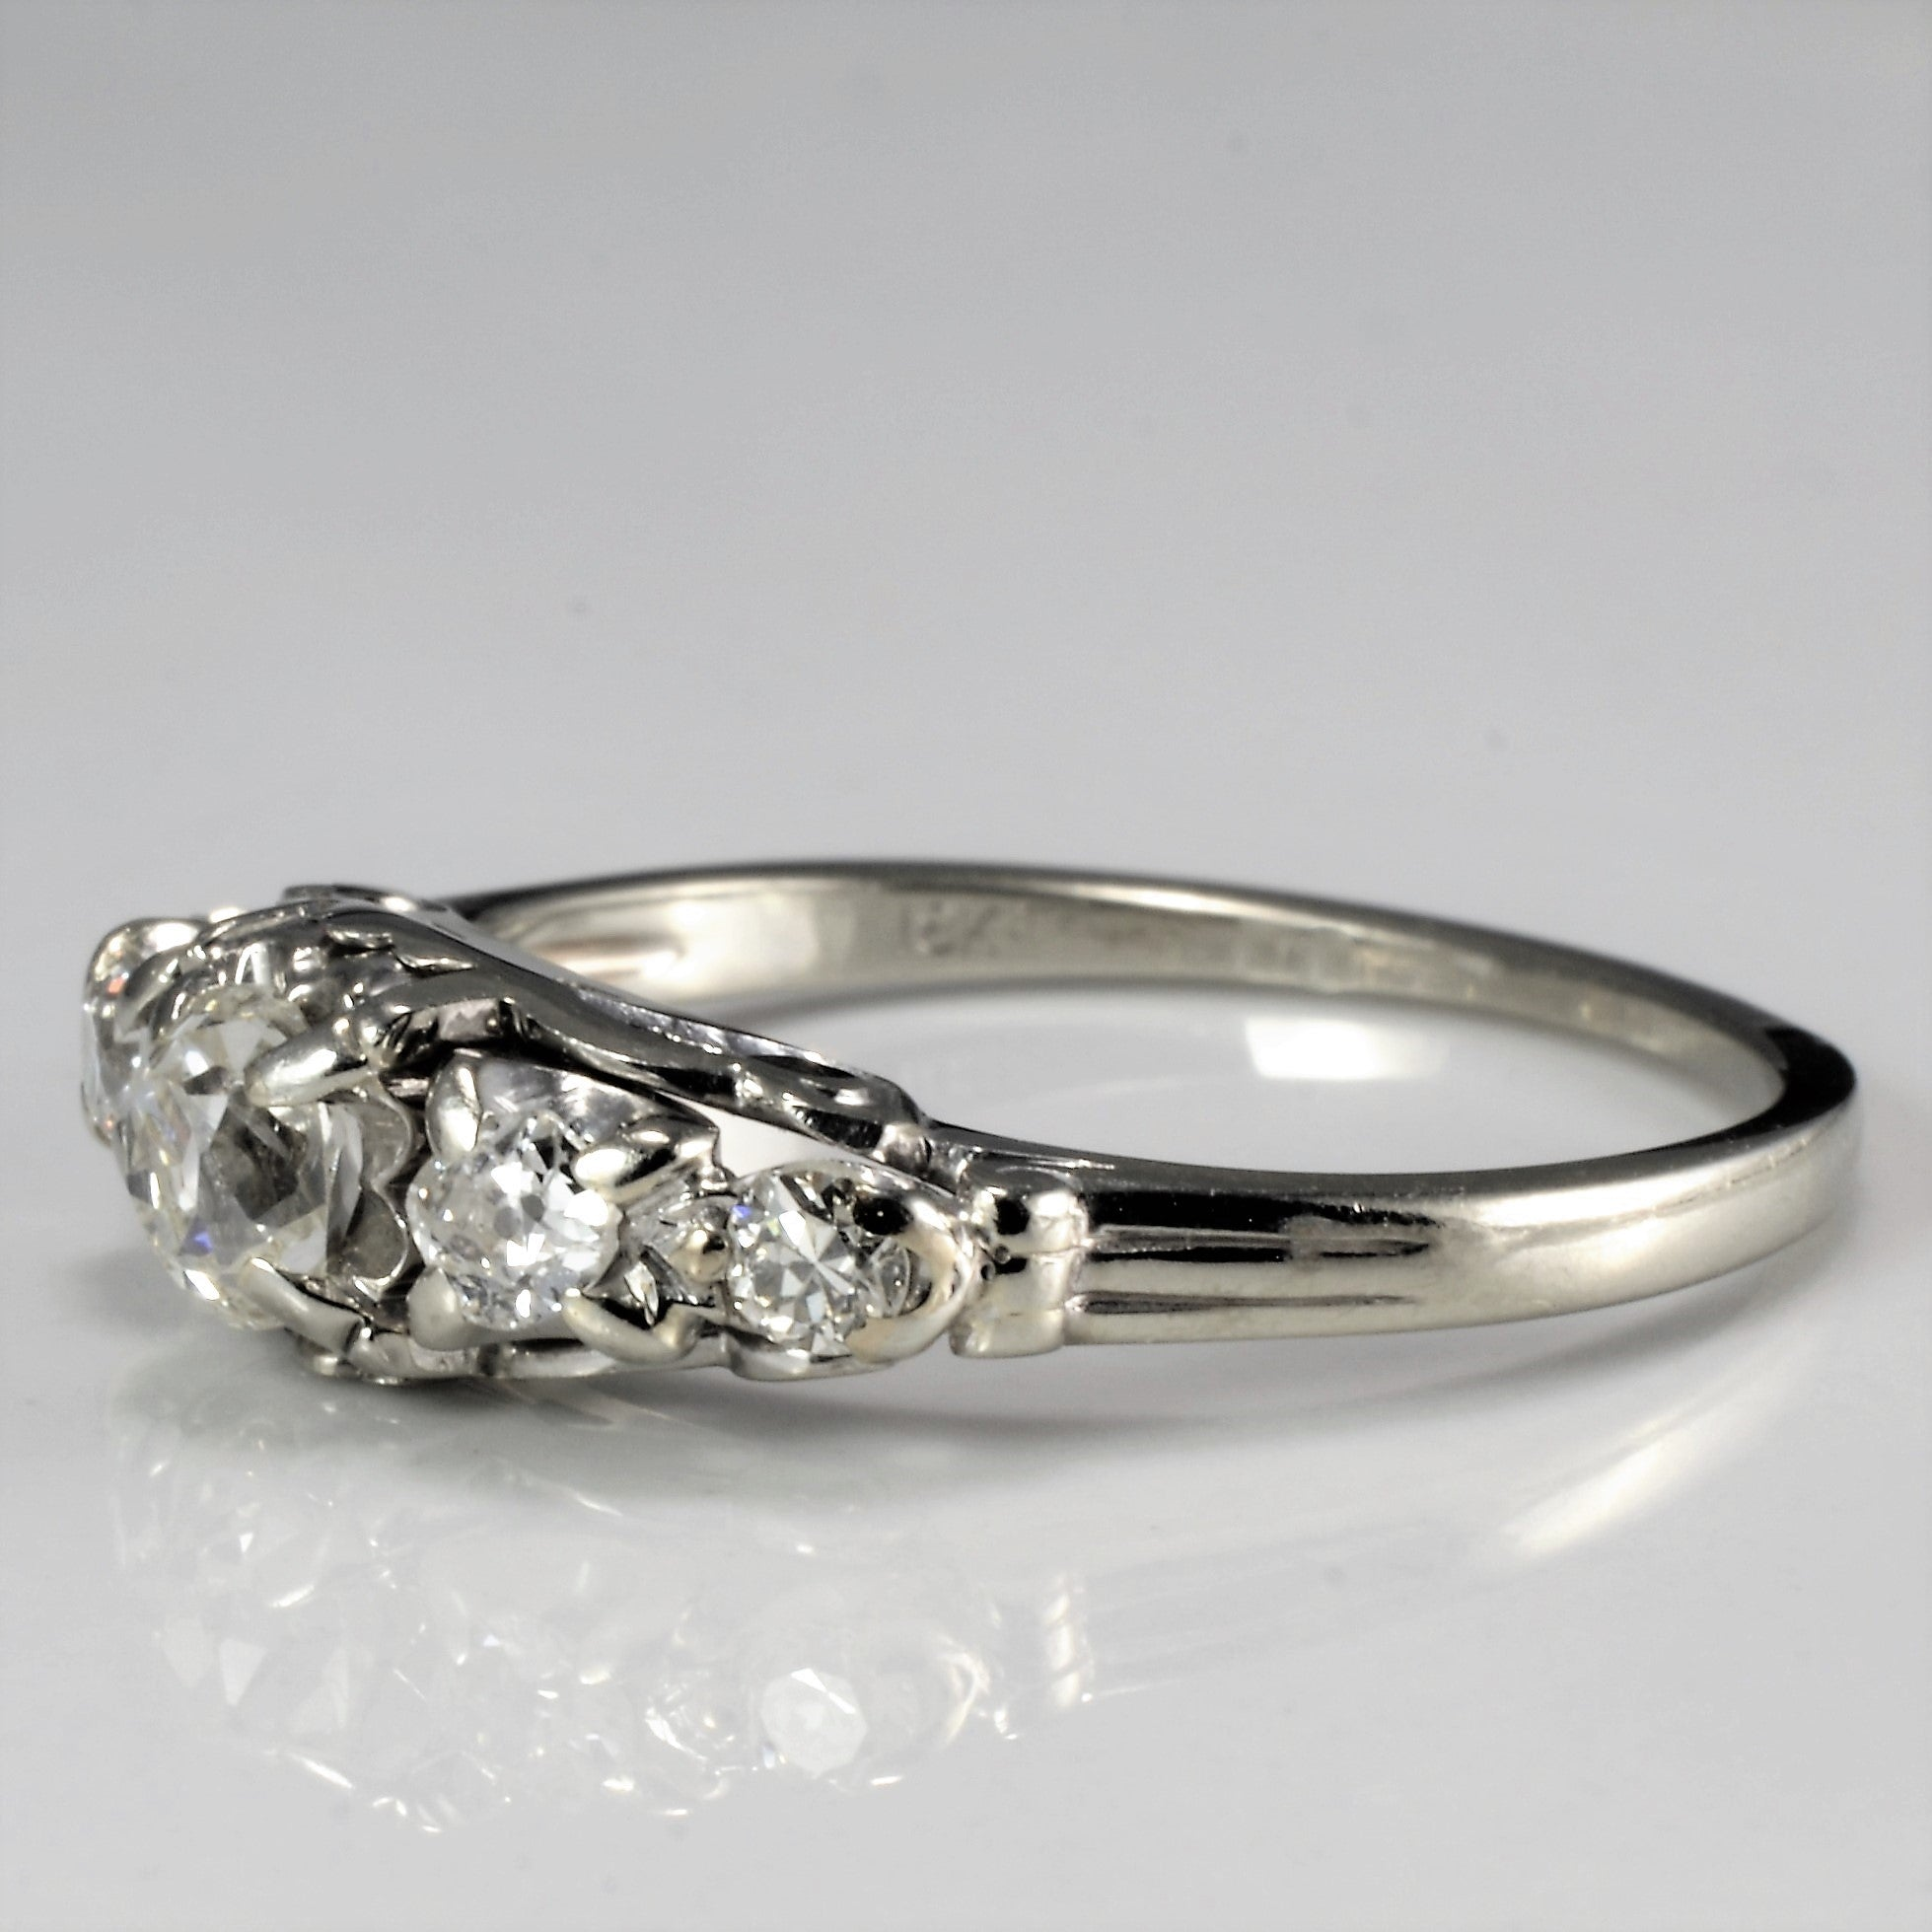 Vintage Five Stone Diamond Engagement Ring | 0.54 ctw, SZ 7 |